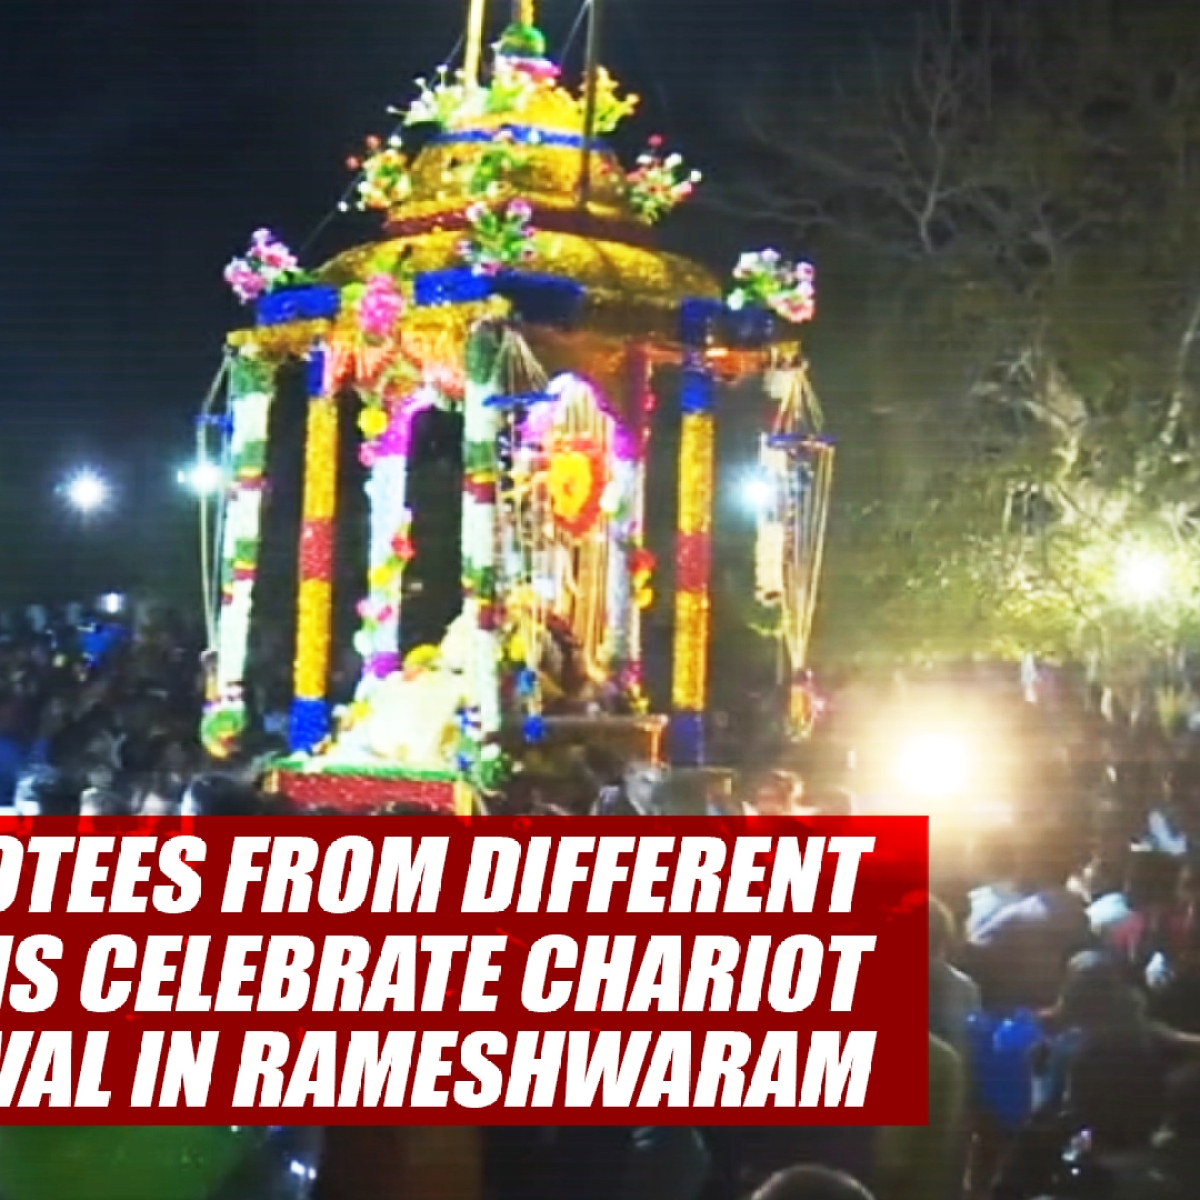 Devotees From Different Faiths Celebrate Chariot Festival In Rameshwaram